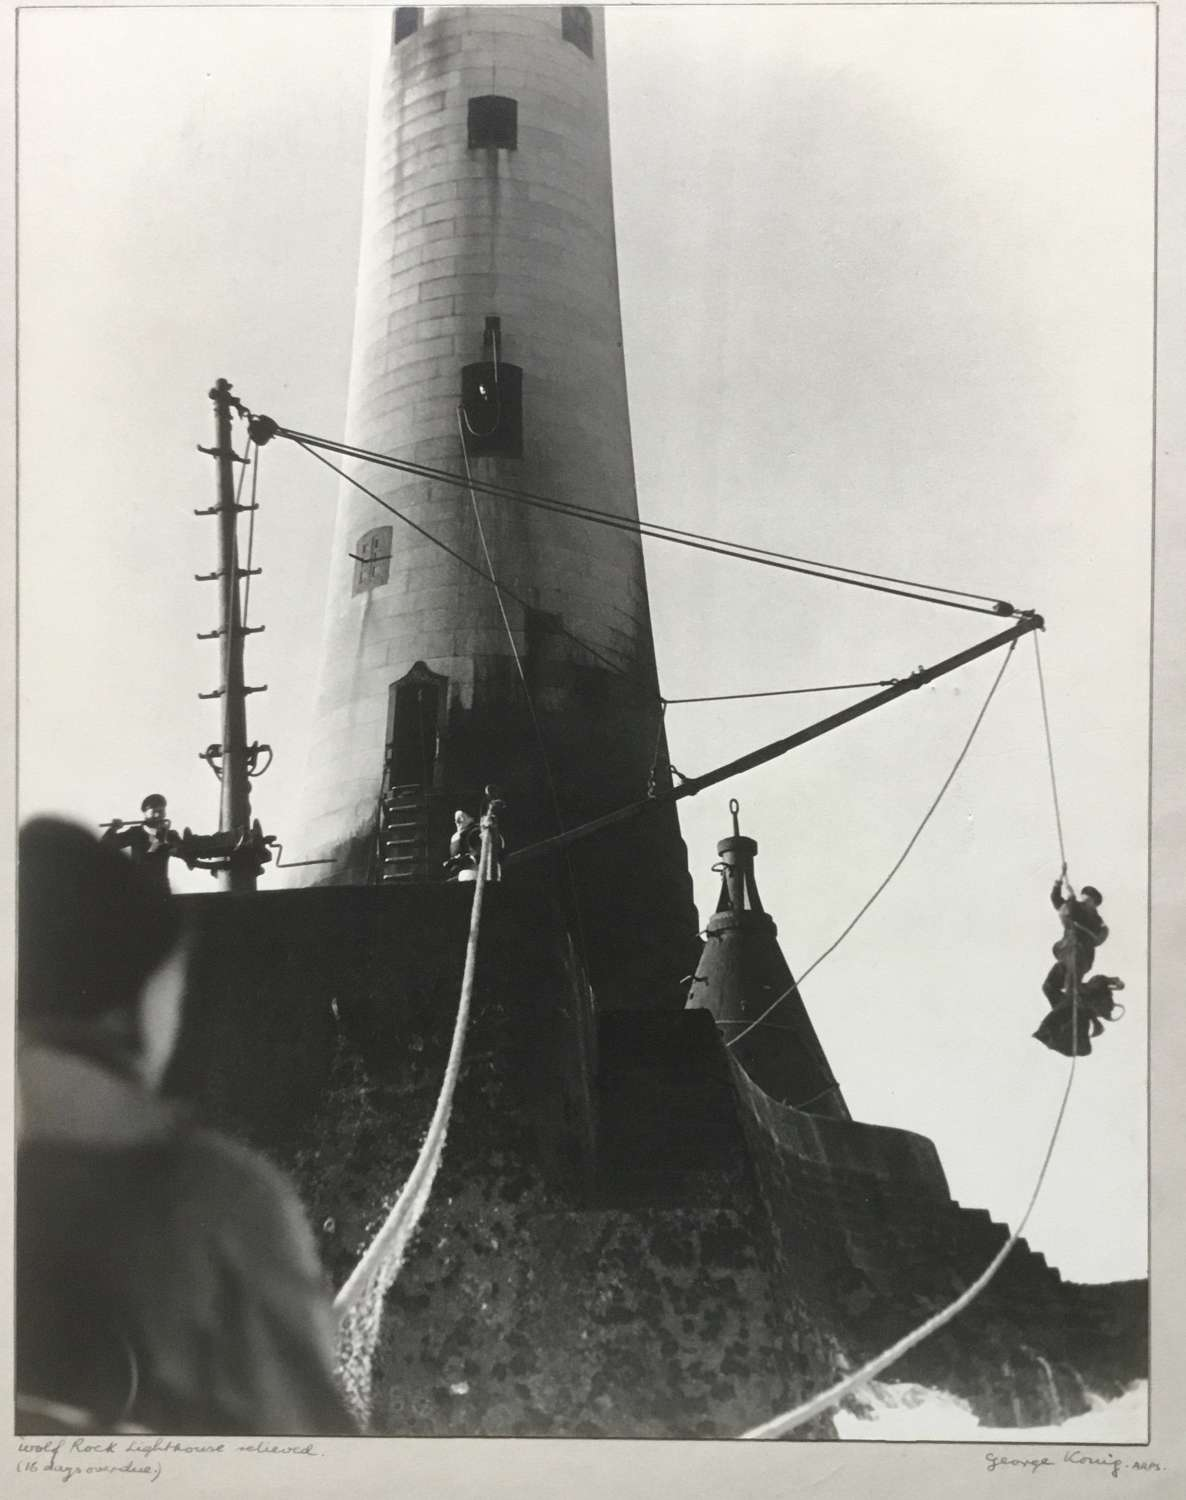 ' The Relief of Wolf Rock Lighthouse ' George Konig, England 1946